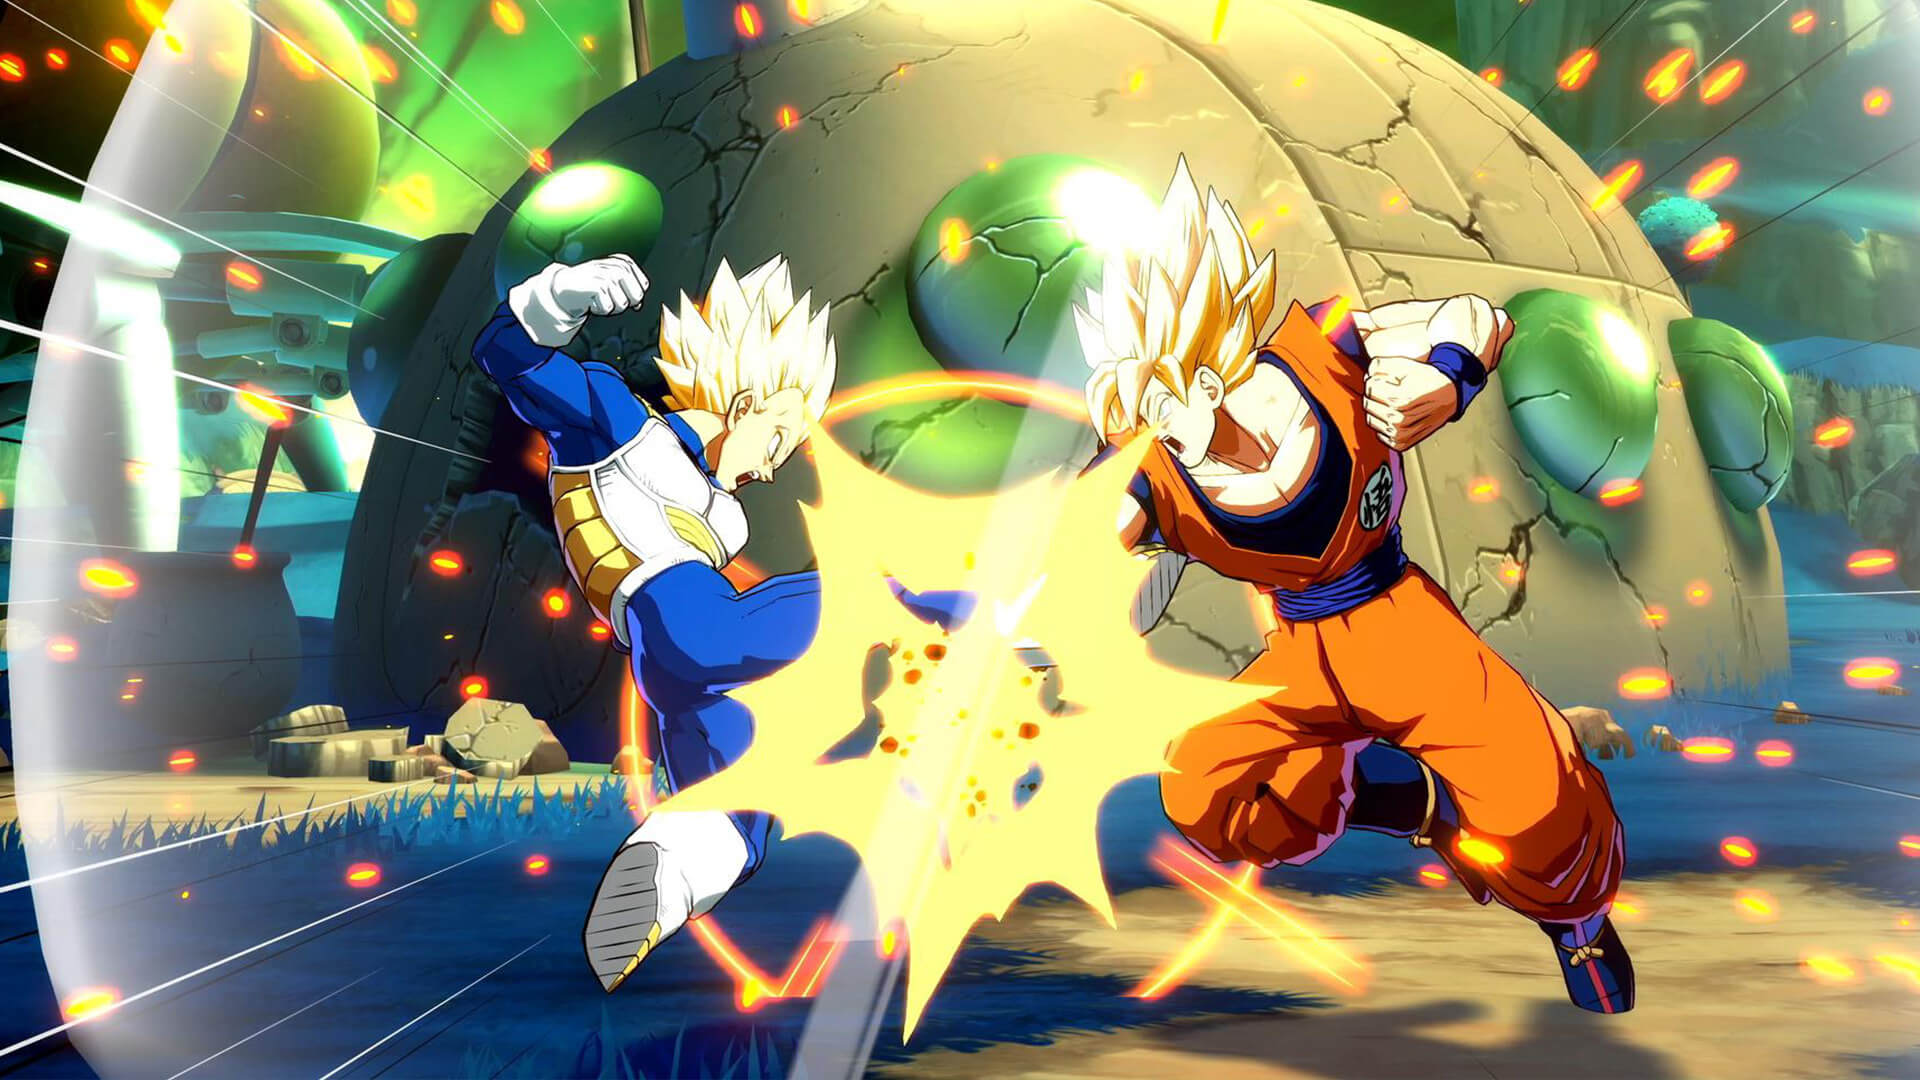 Dragon Ball FighterZ Coming to Nintendo Switch, Confirmed in Leak